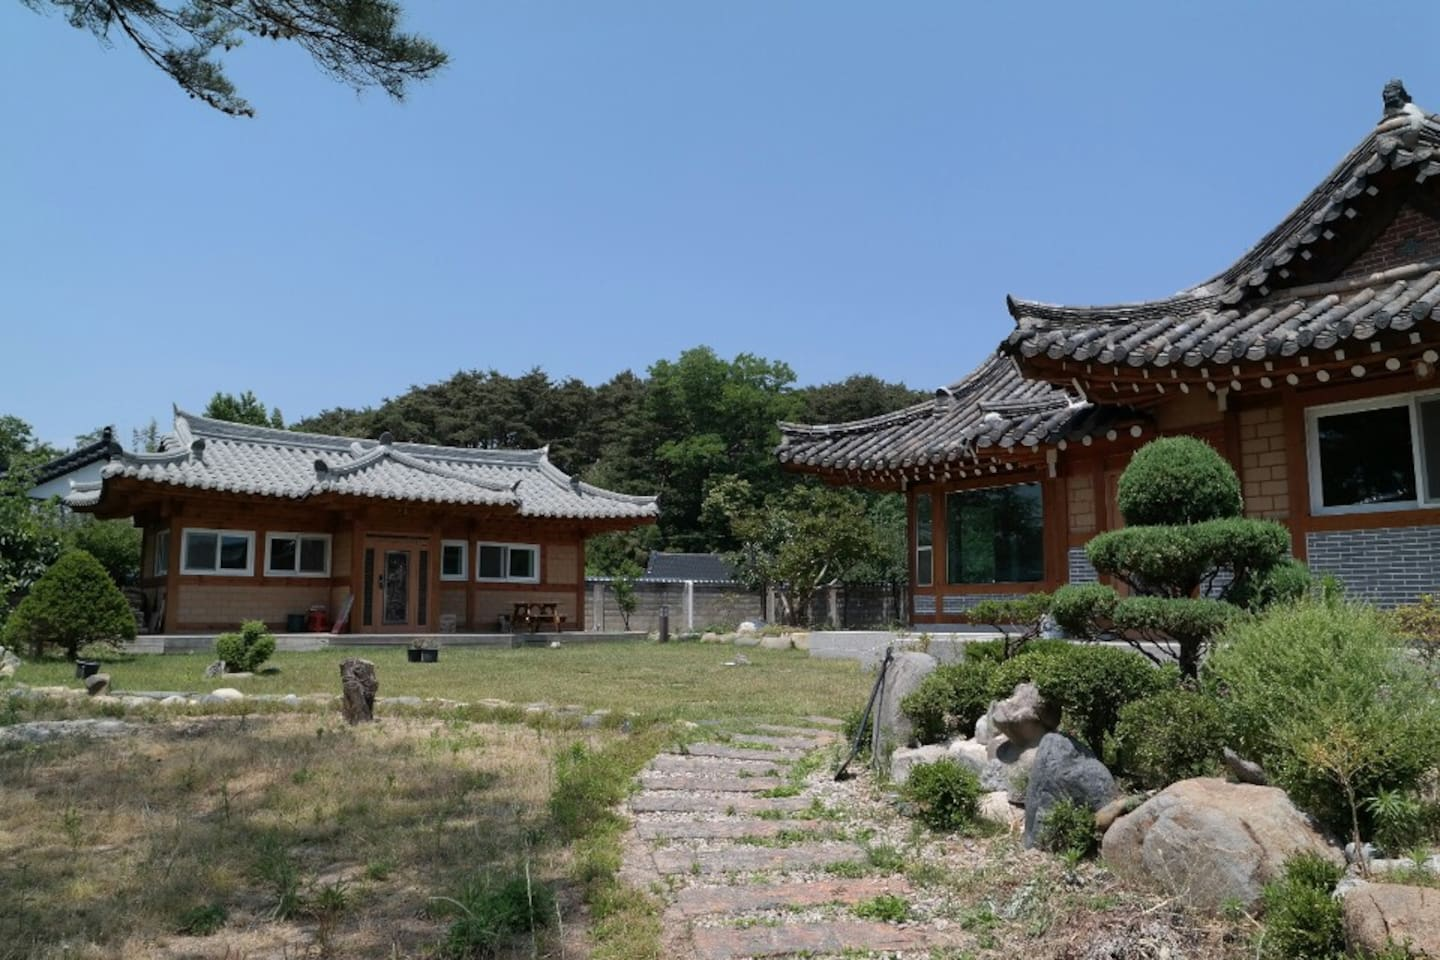 Whole View of the house (전경)